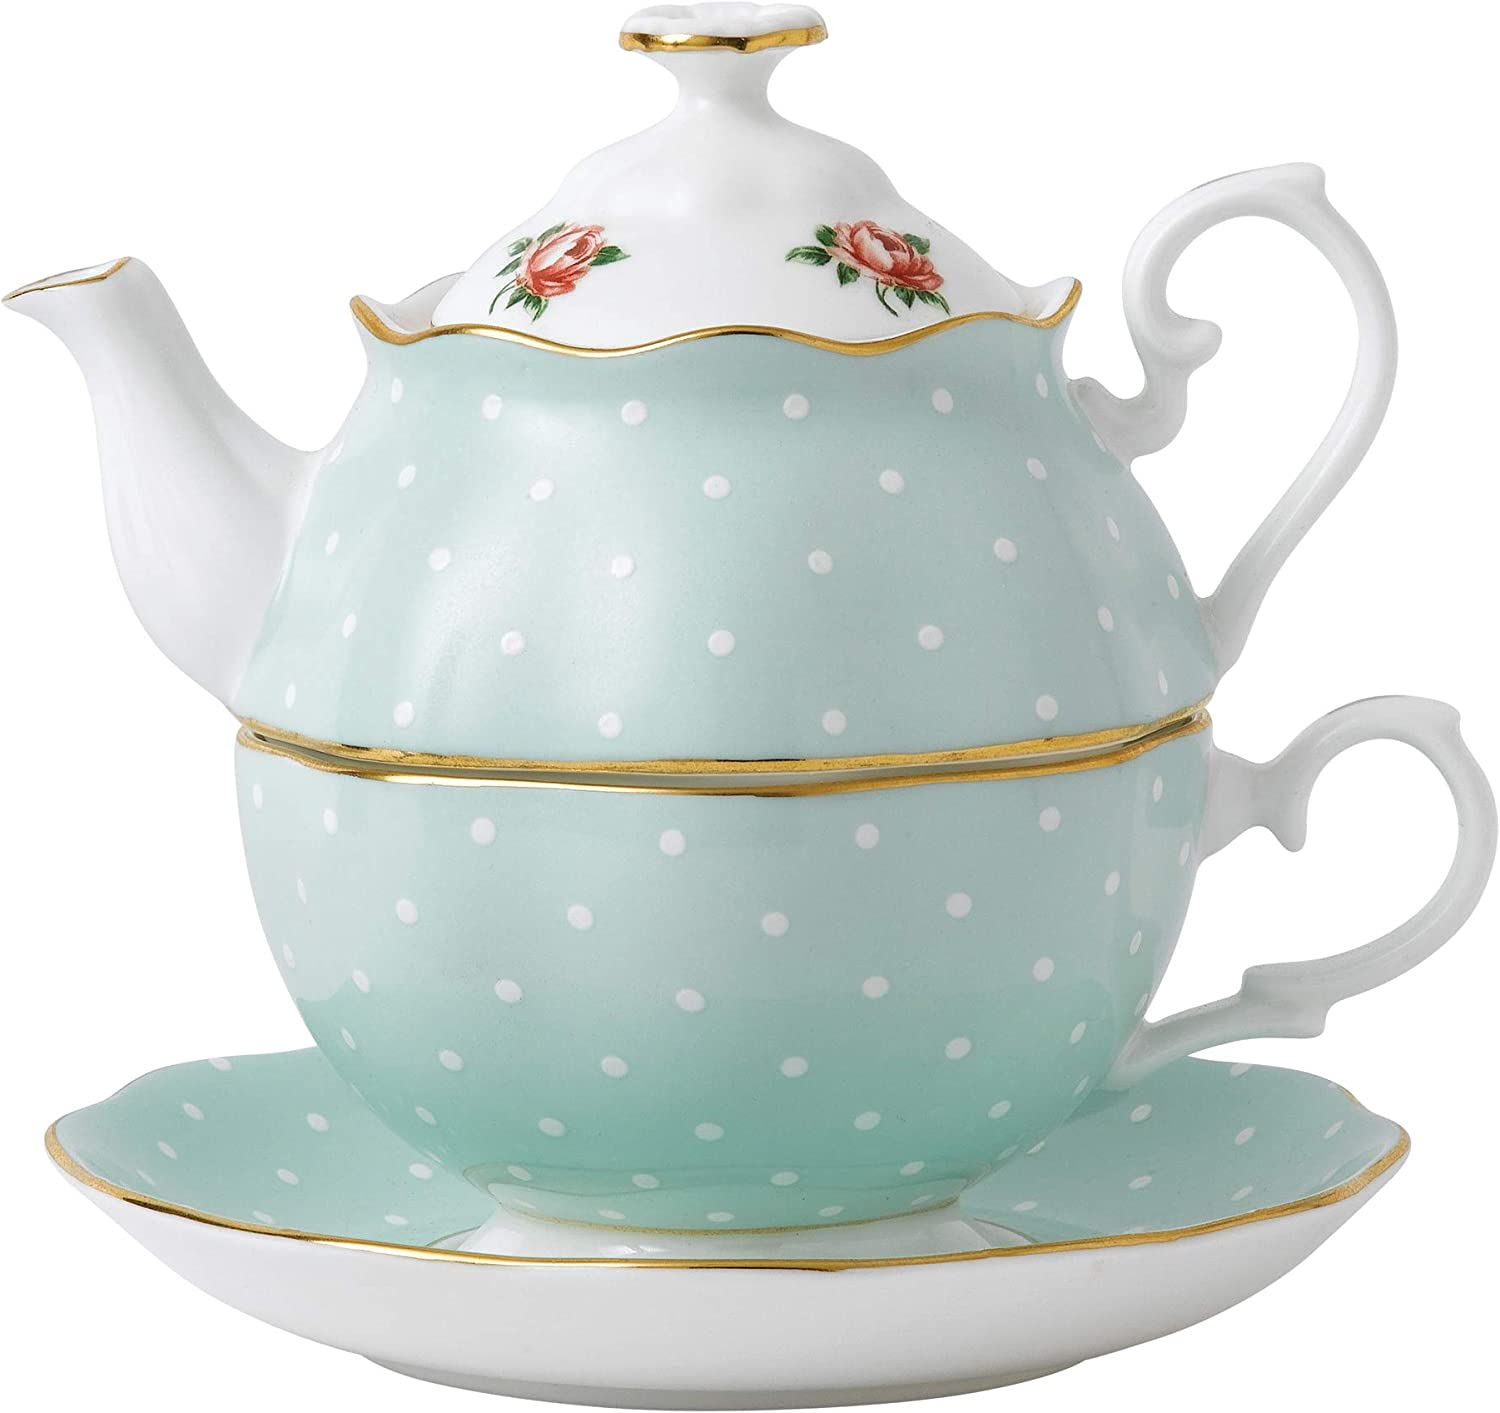 Amazon Com Royal Albert Rose Tea For One Mostly Green With Polka Dots Multicolored Floral Print Royal Albert Polka Rose Cake Stands